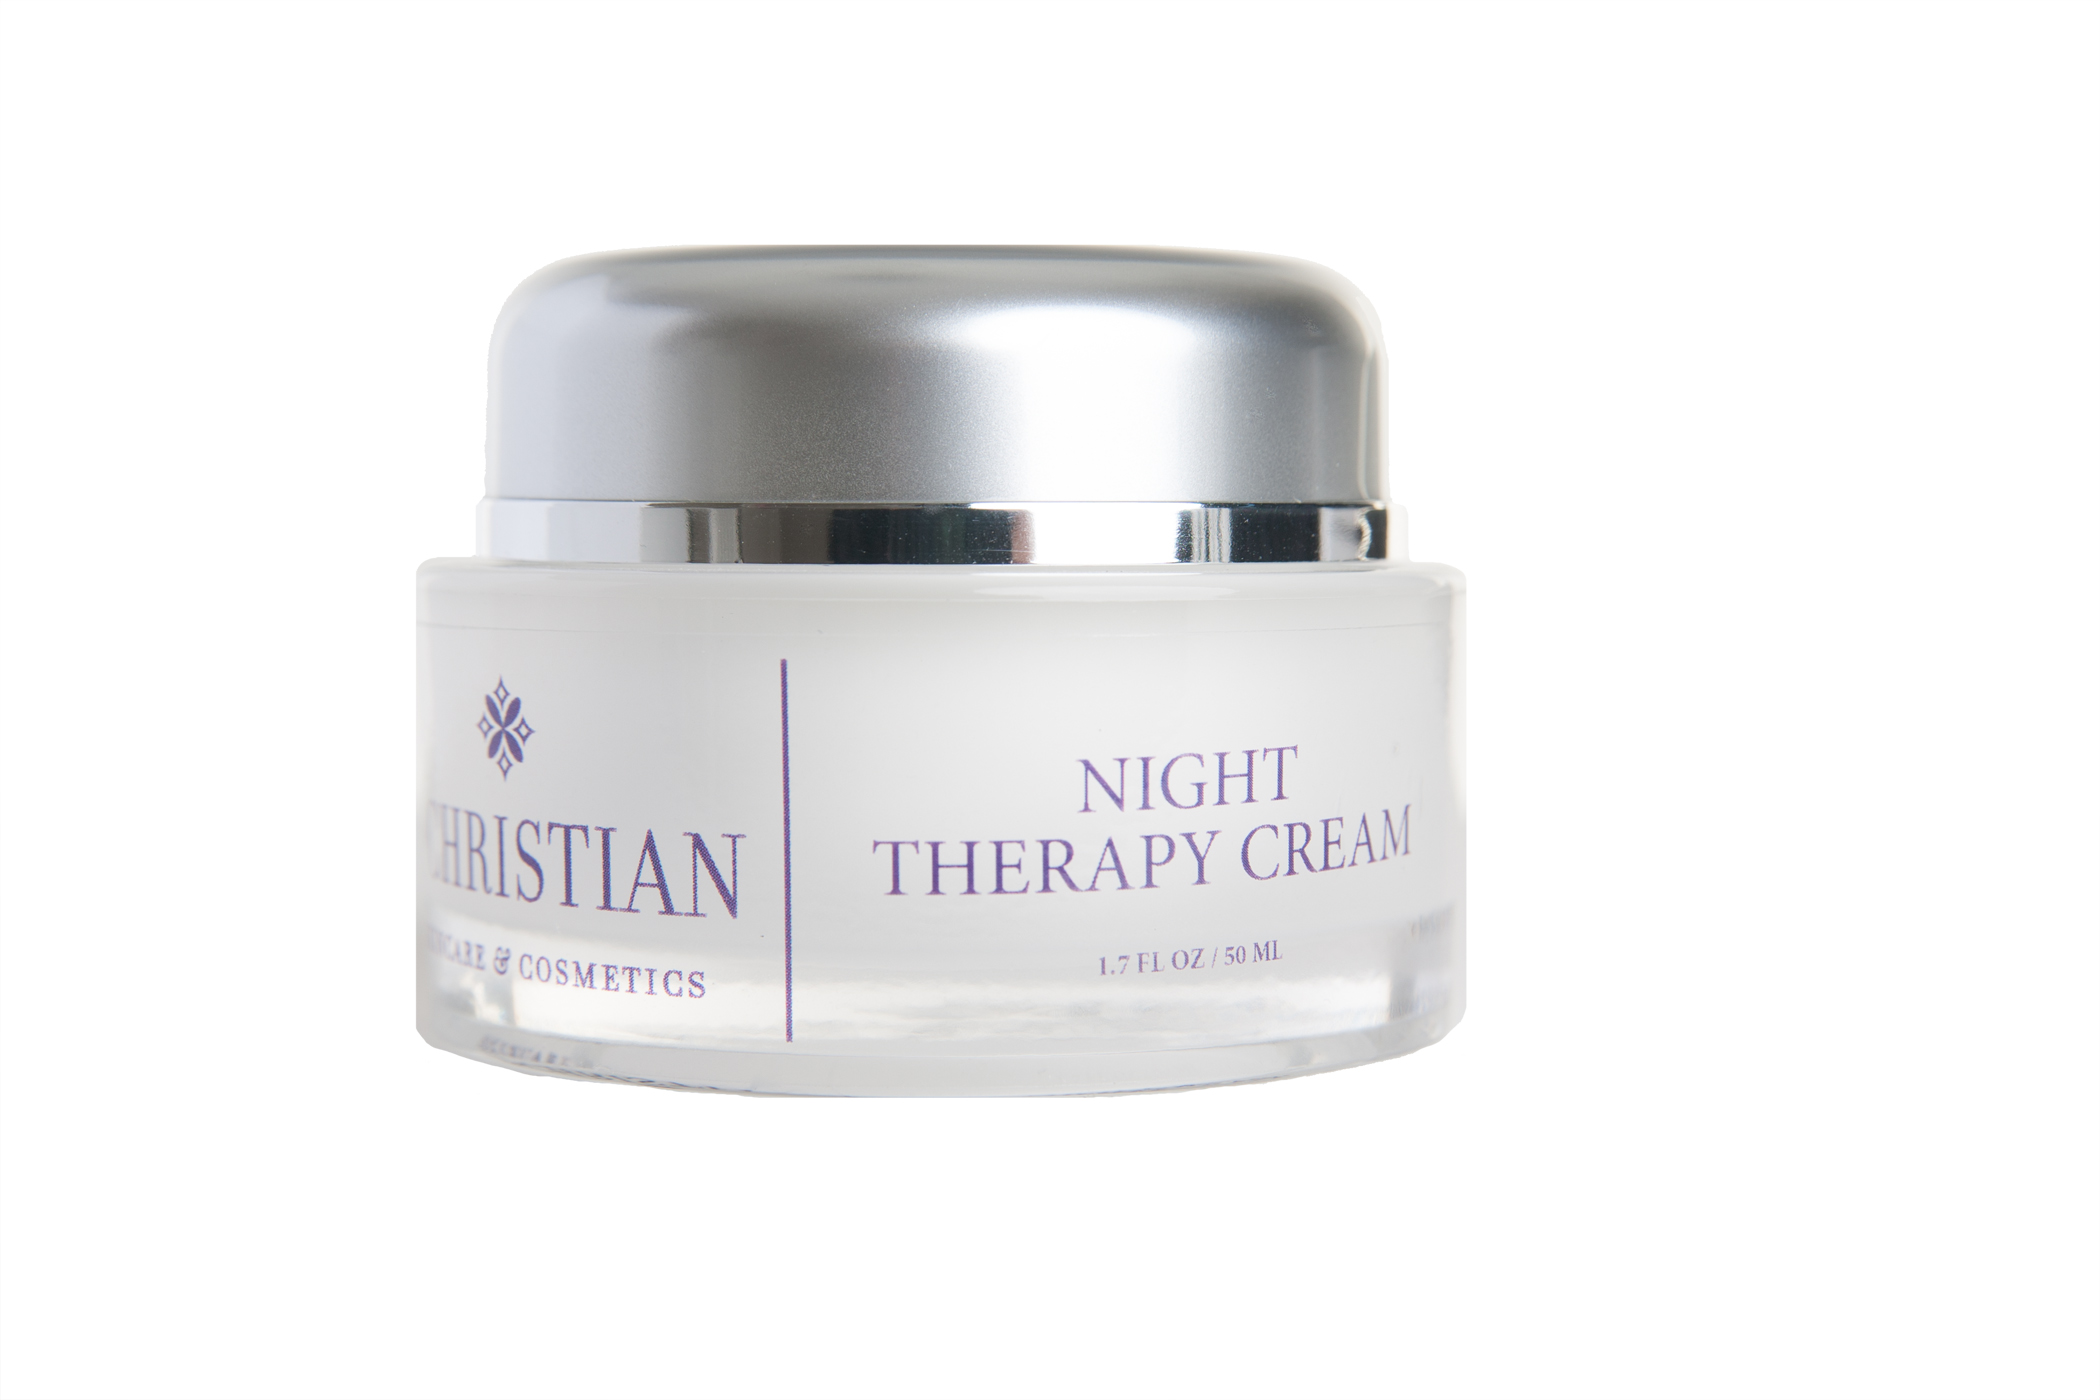 Night Therapy Cream